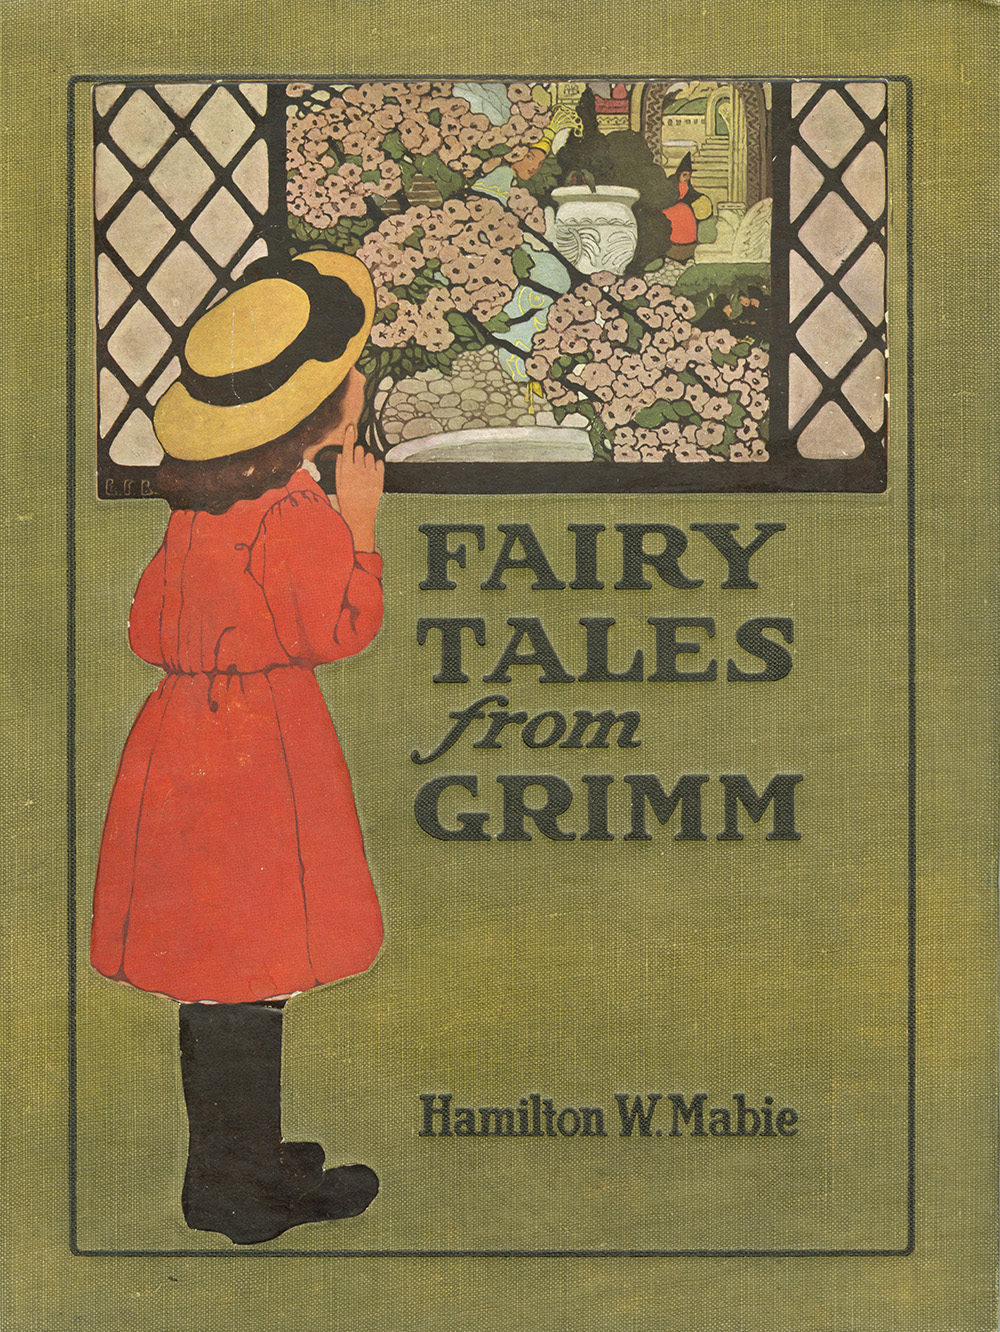 Ethel Franklin Betts, cover design for Fairy Tales from Grimm. Edited with an introduction written by Hamilton W. Mabie. Published in 1909 by Edw. Stern & Co. Inc.